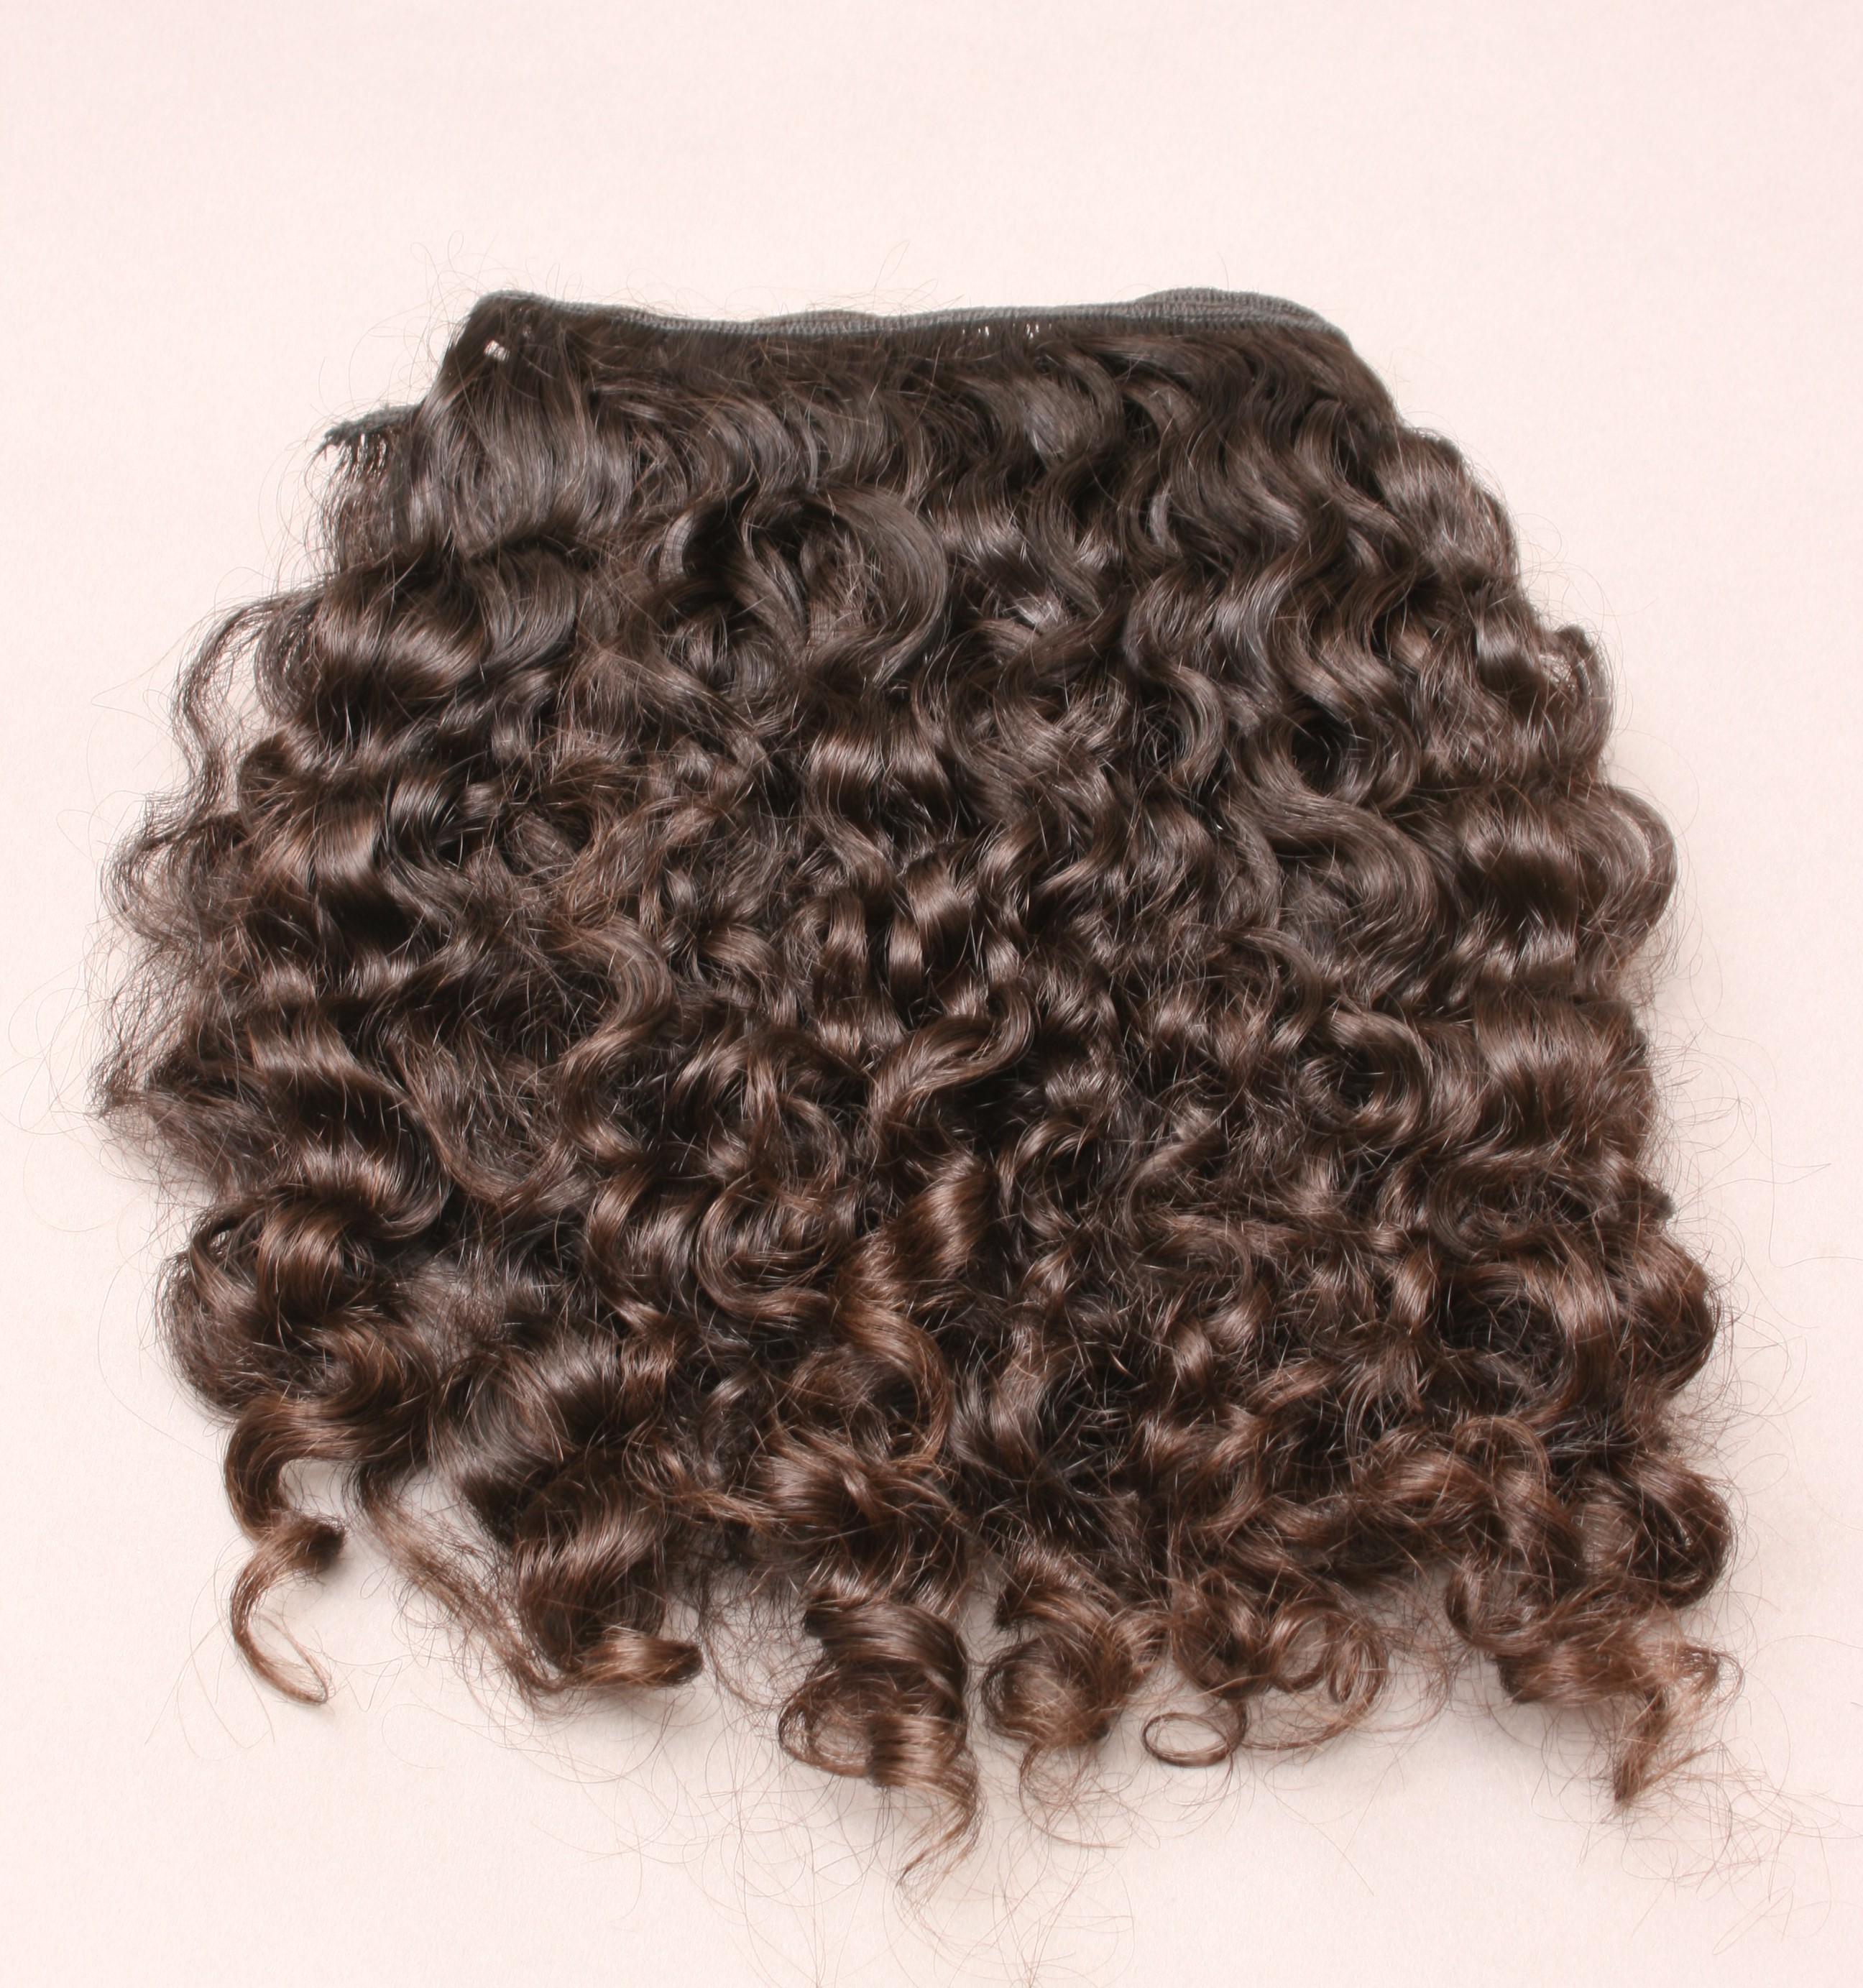 Indian - All Natural Ringlet Curly Signature Hair